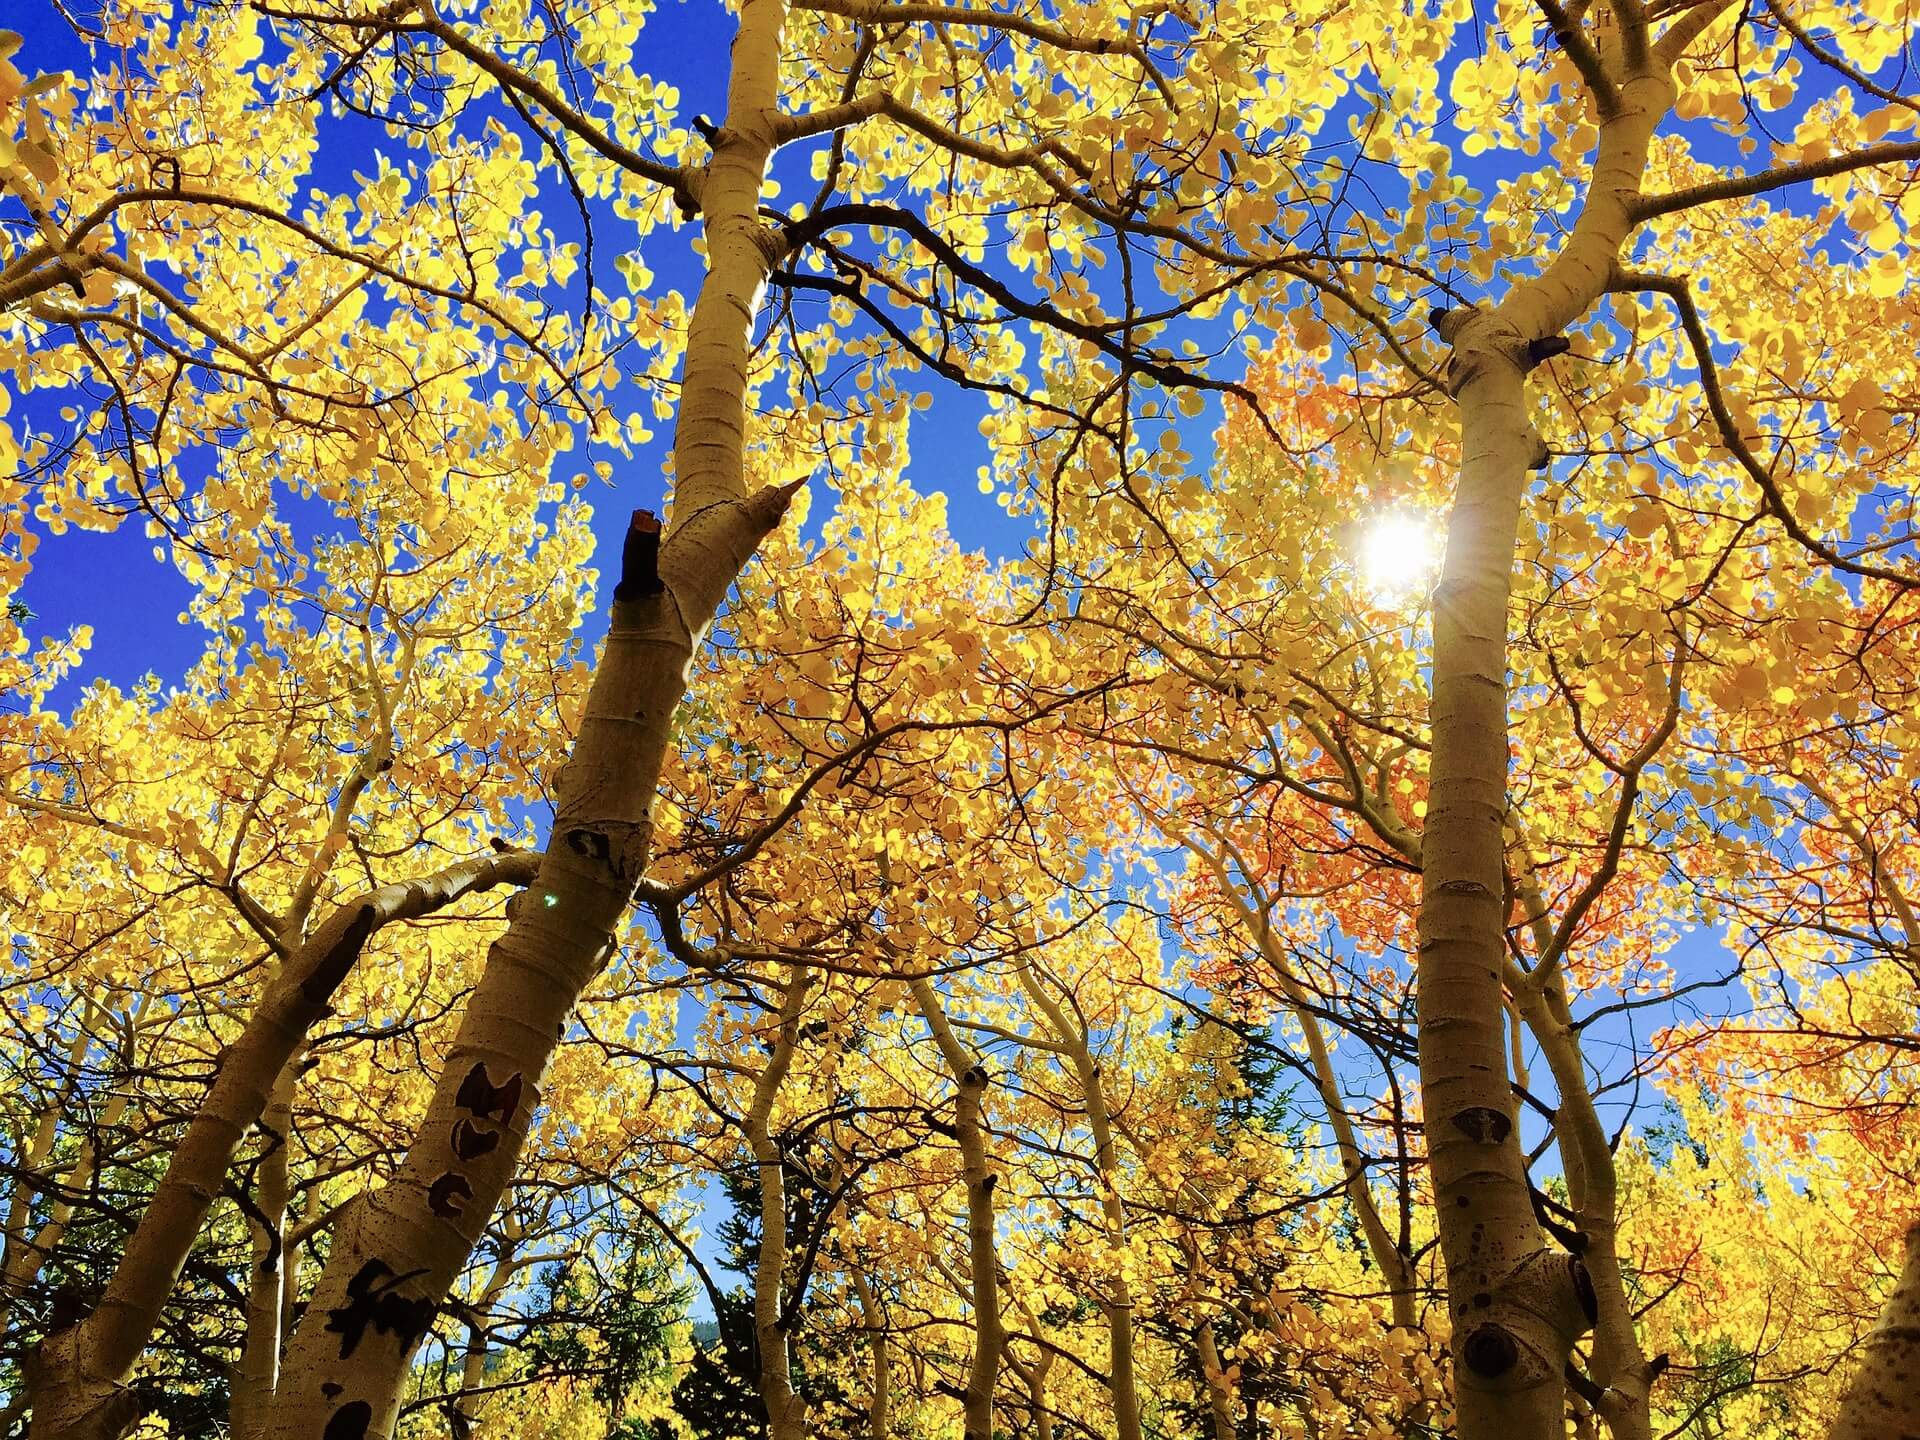 A shot from the forest floor of golden aspen leaves, blue sky and the sun shining through.